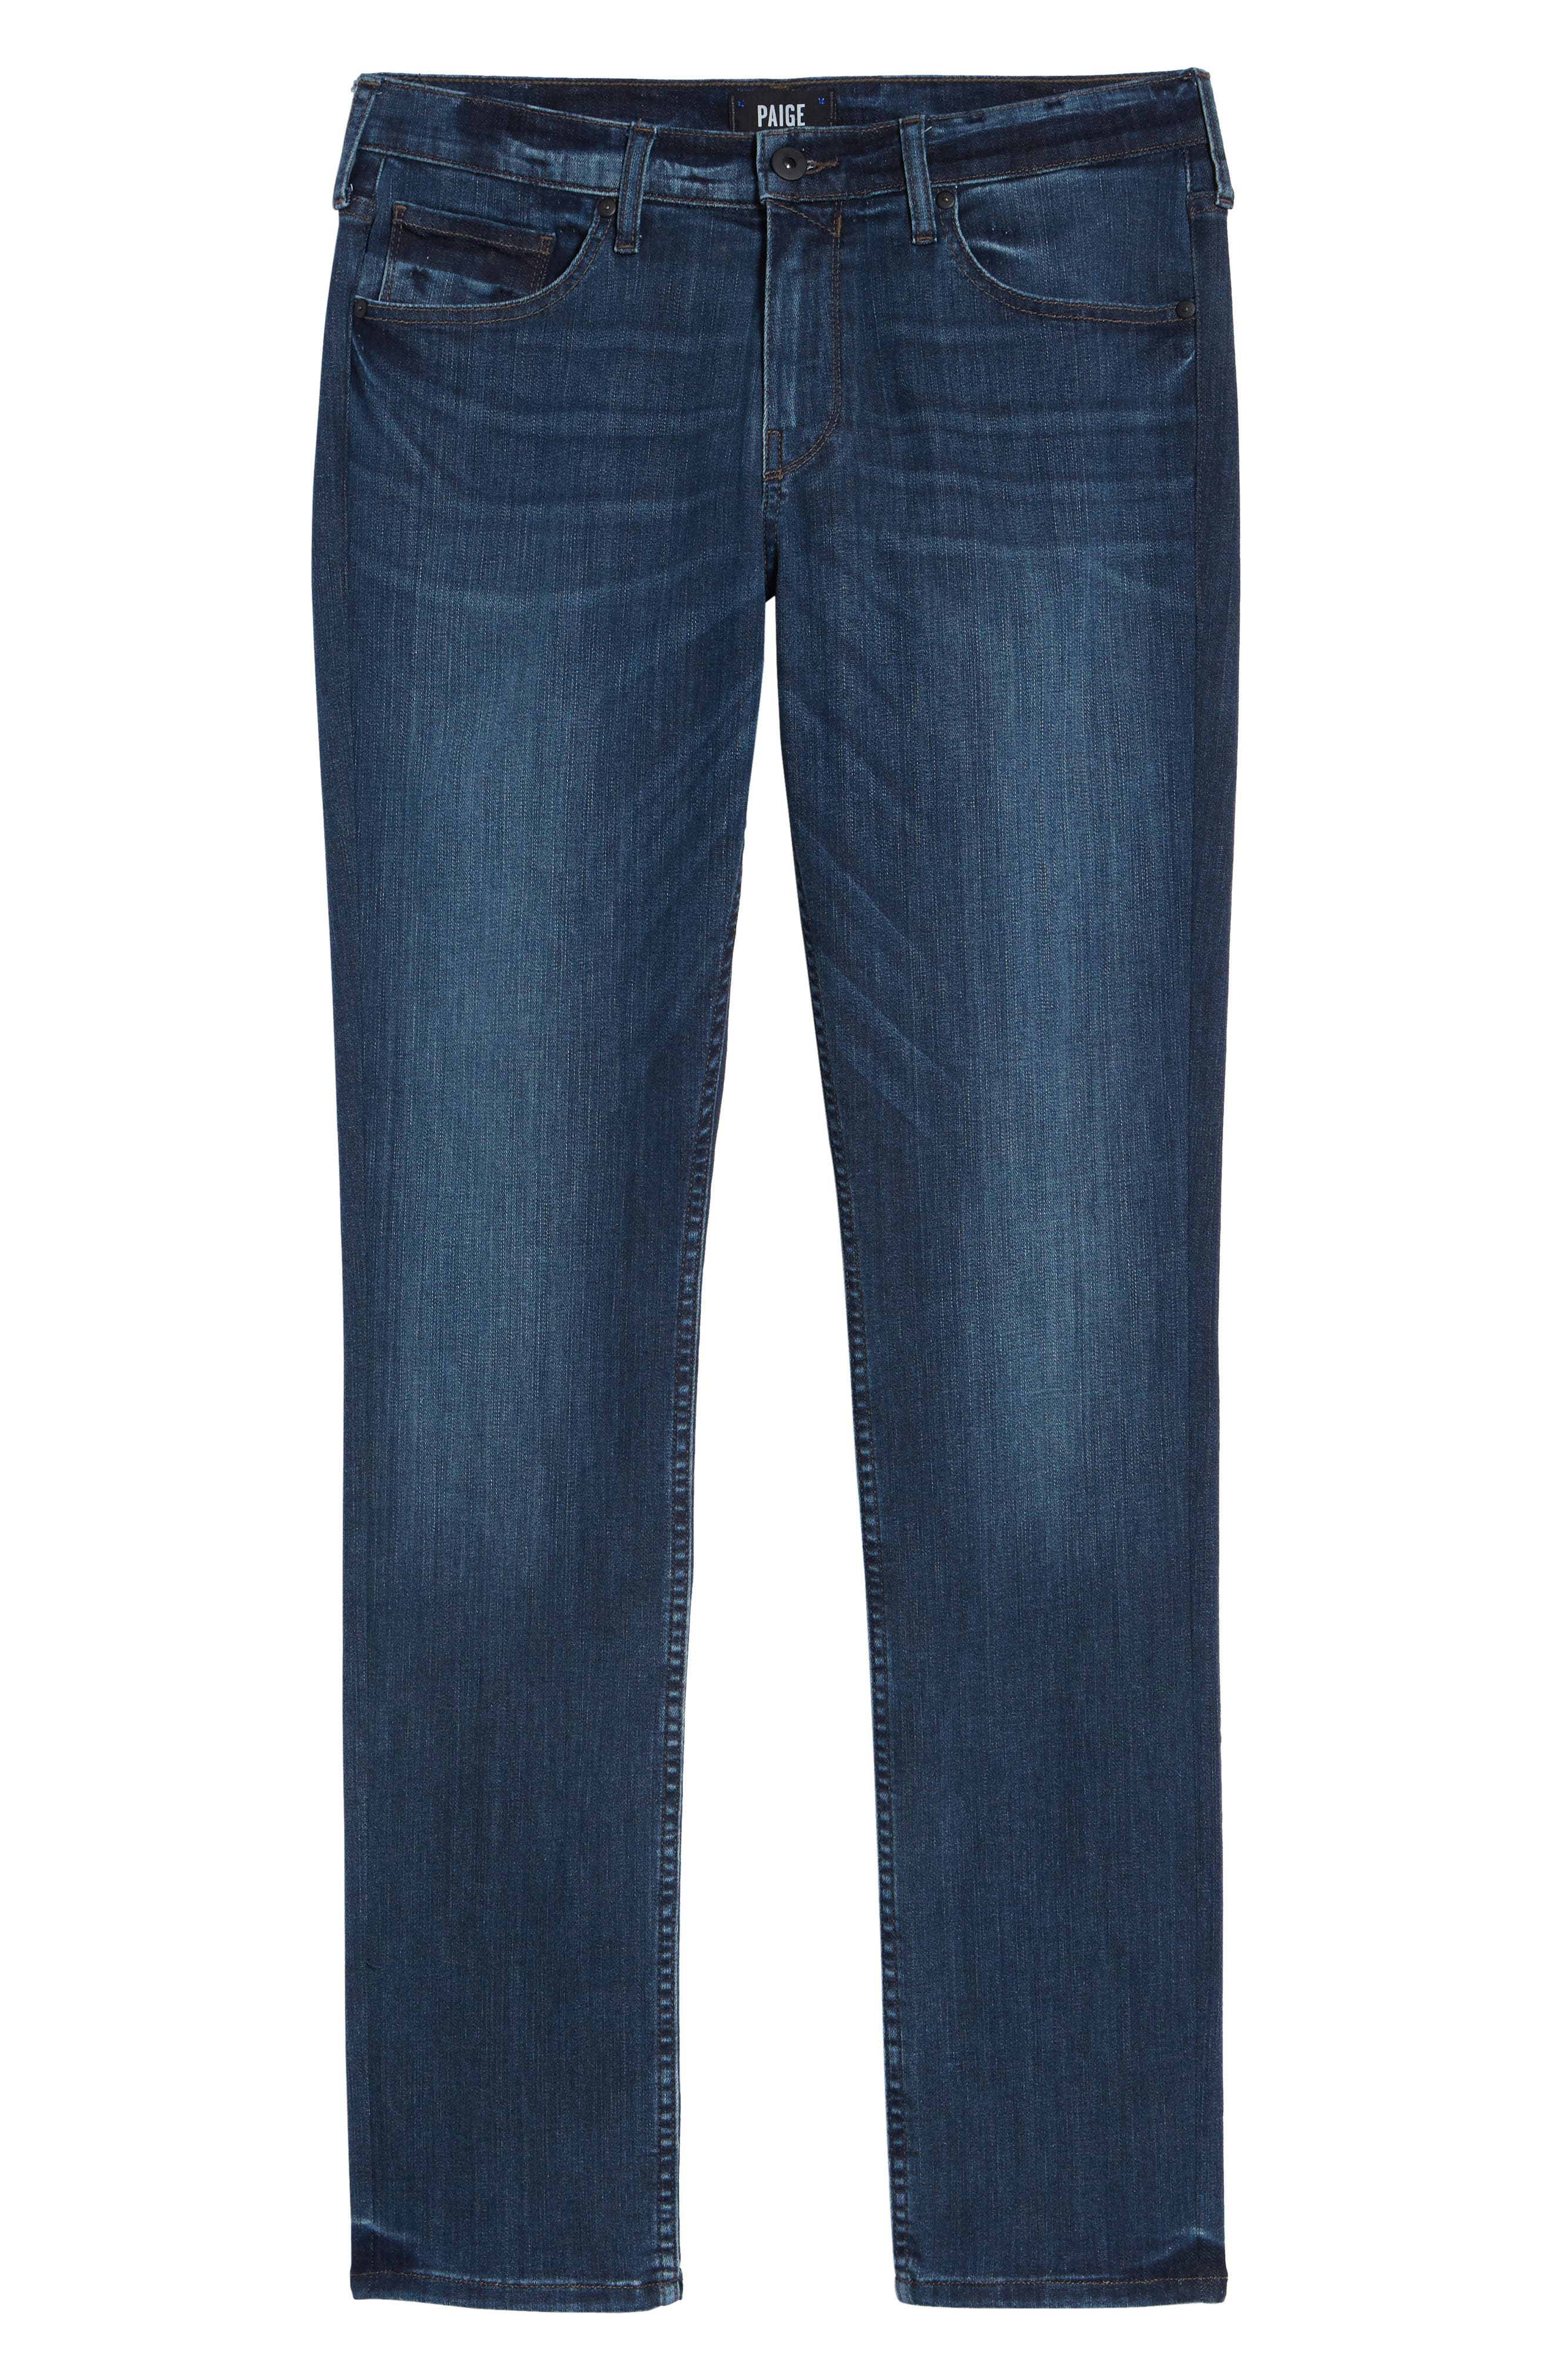 PAIGE, Transcend Vintage Federal Slim Straight Leg Jeans, Alternate thumbnail 7, color, ROARKE